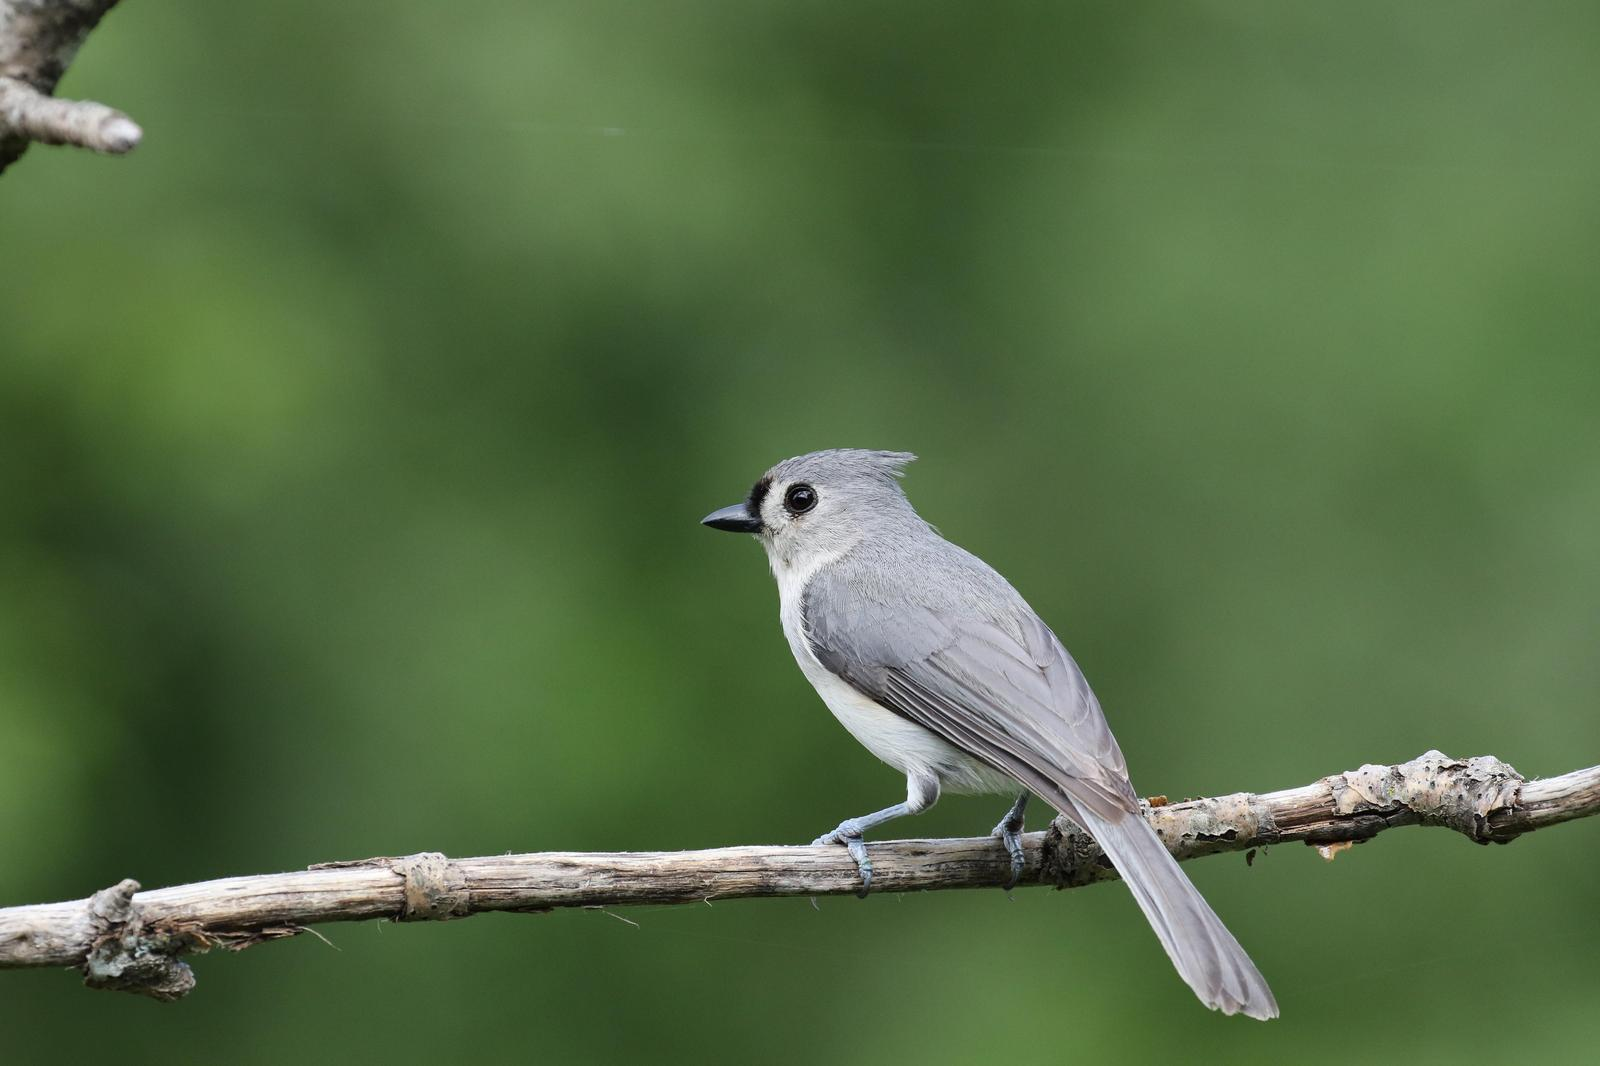 Tufted Titmouse Photo by Kristy Baker